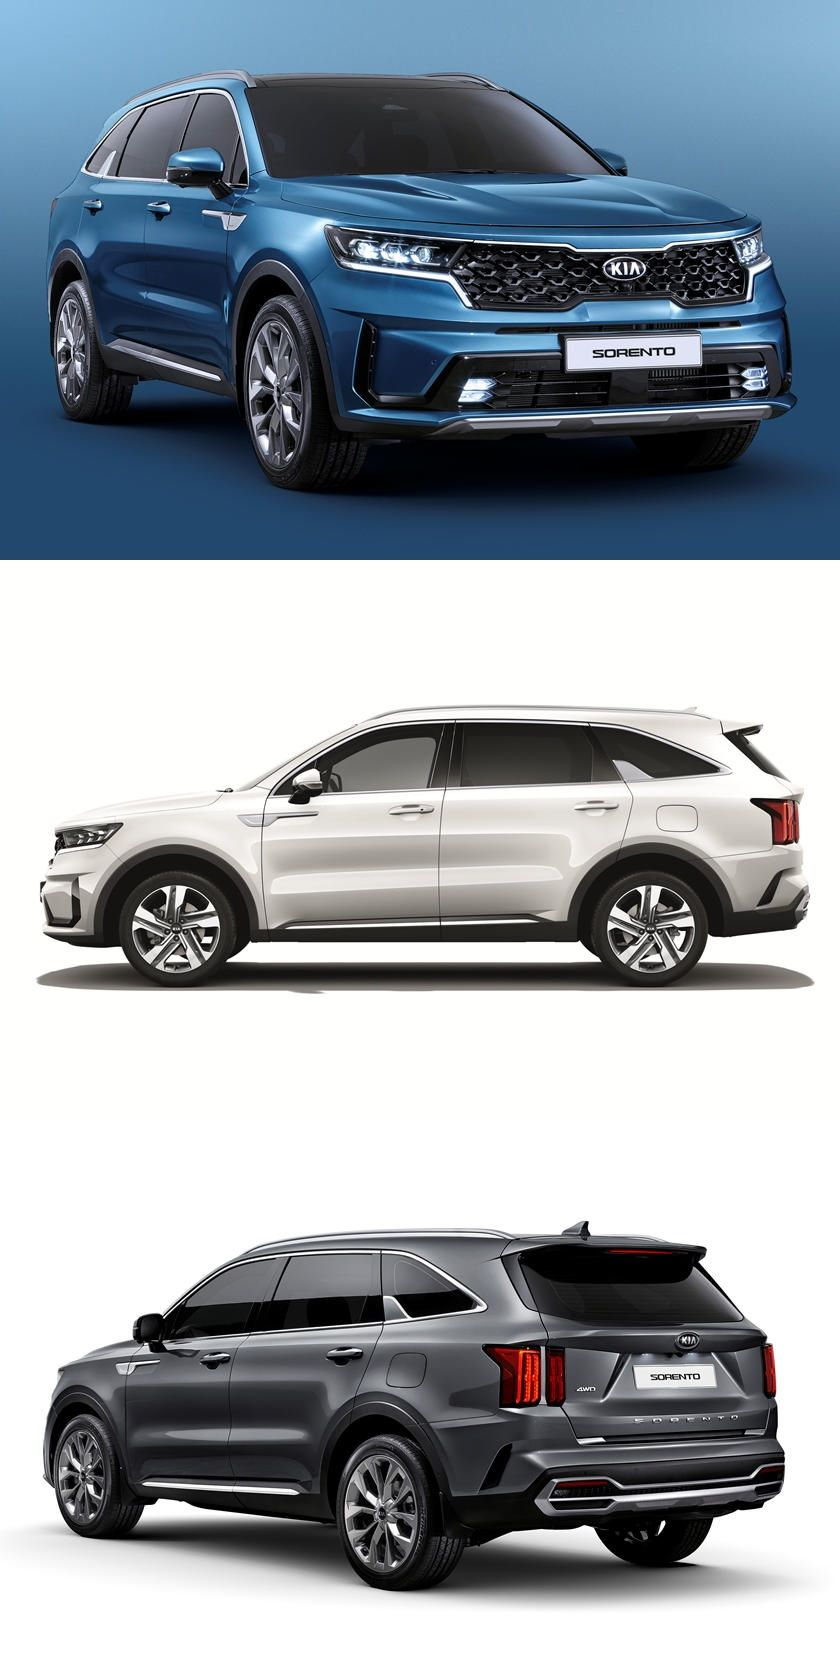 Meet The All New 2021 Kia Sorento In 2020 Kia Sorento Sorento Kia